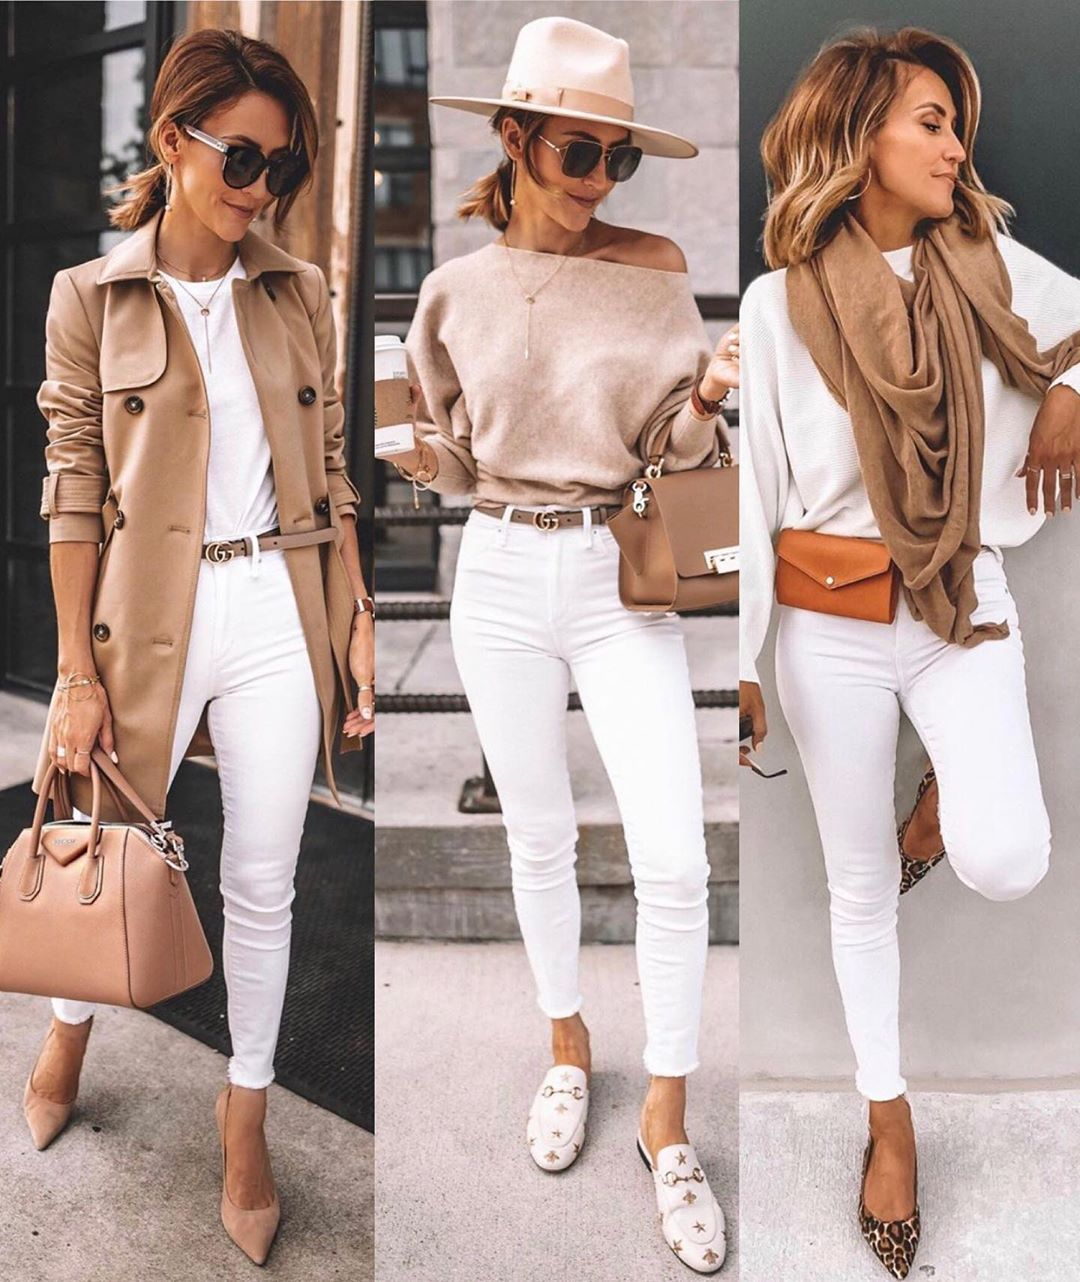 """DOSES OF STYLE on Instagram: """"Fall style 🤩 Left, right or center? 👇 By @karinastylediaries"""""""